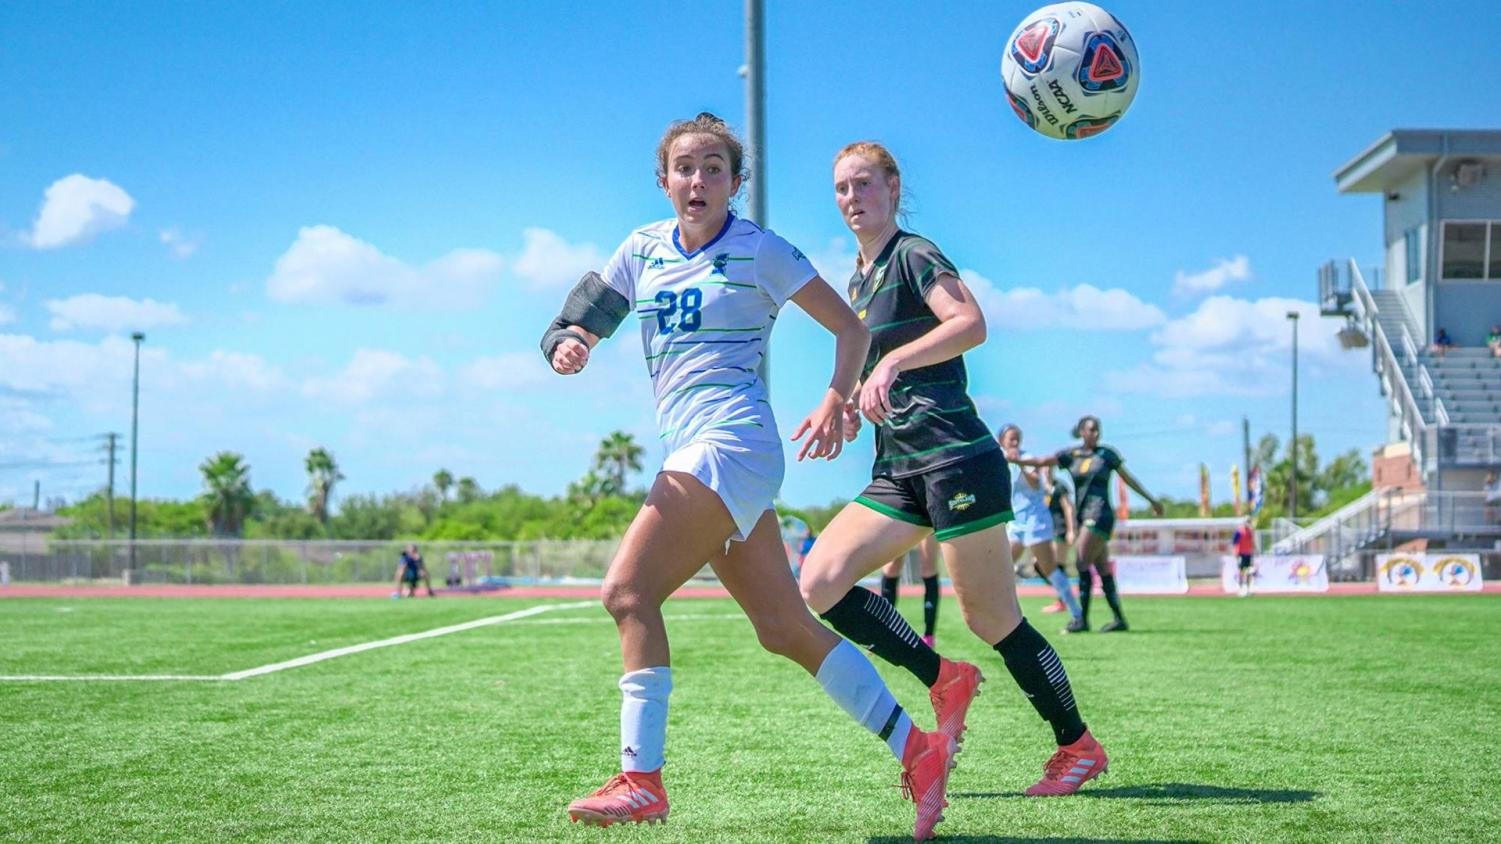 Photo courtesy of Islander Athletics - Freshman Ana Recarte-Pacheco attempting to chase down a pass against Southeastern Louisiana on Oct. 6th. Recarte-Pacheco finished the day with a crucial goal during the first half of play.